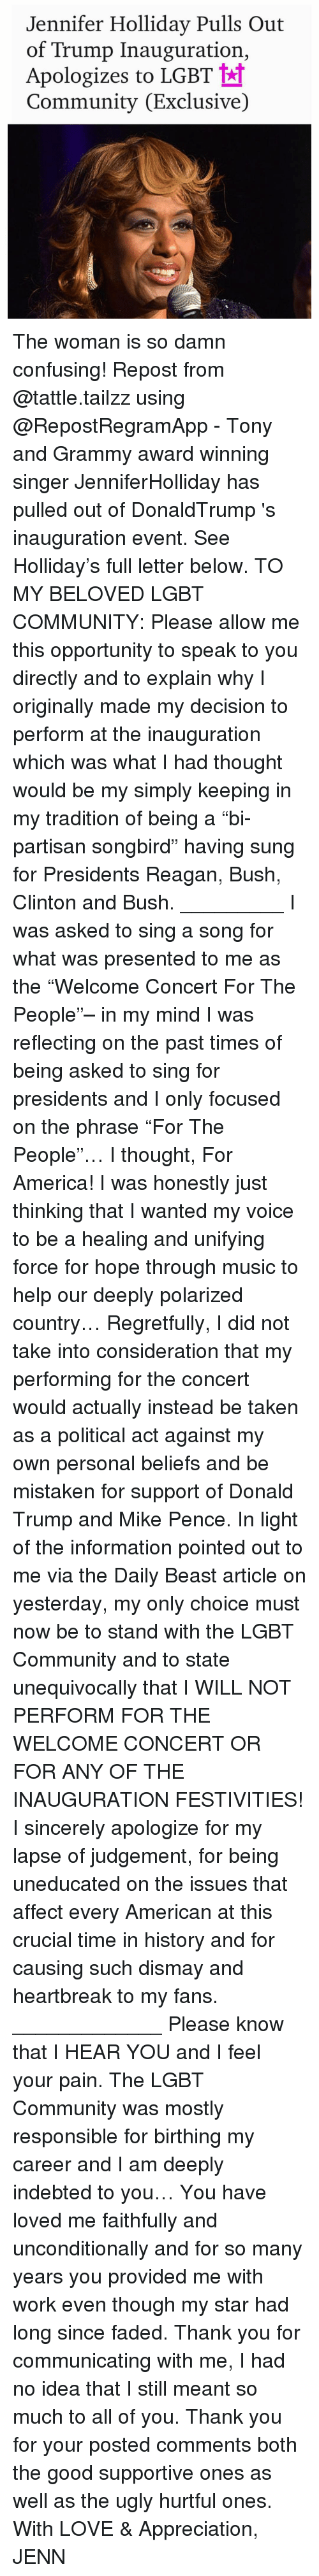 "Grammy Awards, Grammys, and Memes: Jennifer Holliday Pulls Out  of Trump Inauguration,  Apologizes to LGBT  tt  Community (Exclusive) The woman is so damn confusing! Repost from @tattle.tailzz using @RepostRegramApp - Tony and Grammy award winning singer JenniferHolliday has pulled out of DonaldTrump 's inauguration event. See Holliday's full letter below. TO MY BELOVED LGBT COMMUNITY: Please allow me this opportunity to speak to you directly and to explain why I originally made my decision to perform at the inauguration which was what I had thought would be my simply keeping in my tradition of being a ""bi-partisan songbird"" having sung for Presidents Reagan, Bush, Clinton and Bush. _________ I was asked to sing a song for what was presented to me as the ""Welcome Concert For The People""– in my mind I was reflecting on the past times of being asked to sing for presidents and I only focused on the phrase ""For The People""… I thought, For America! I was honestly just thinking that I wanted my voice to be a healing and unifying force for hope through music to help our deeply polarized country… Regretfully, I did not take into consideration that my performing for the concert would actually instead be taken as a political act against my own personal beliefs and be mistaken for support of Donald Trump and Mike Pence. In light of the information pointed out to me via the Daily Beast article on yesterday, my only choice must now be to stand with the LGBT Community and to state unequivocally that I WILL NOT PERFORM FOR THE WELCOME CONCERT OR FOR ANY OF THE INAUGURATION FESTIVITIES! I sincerely apologize for my lapse of judgement, for being uneducated on the issues that affect every American at this crucial time in history and for causing such dismay and heartbreak to my fans. _____________ Please know that I HEAR YOU and I feel your pain. The LGBT Community was mostly responsible for birthing my career and I am deeply indebted to you… You have loved me faithfully and unconditionally and for so many years you provided me with work even though my star had long since faded. Thank you for communicating with me, I had no idea that I still meant so much to all of you. Thank you for your posted comments both the good supportive ones as well as the ugly hurtful ones. With LOVE & Appreciation, JENN"